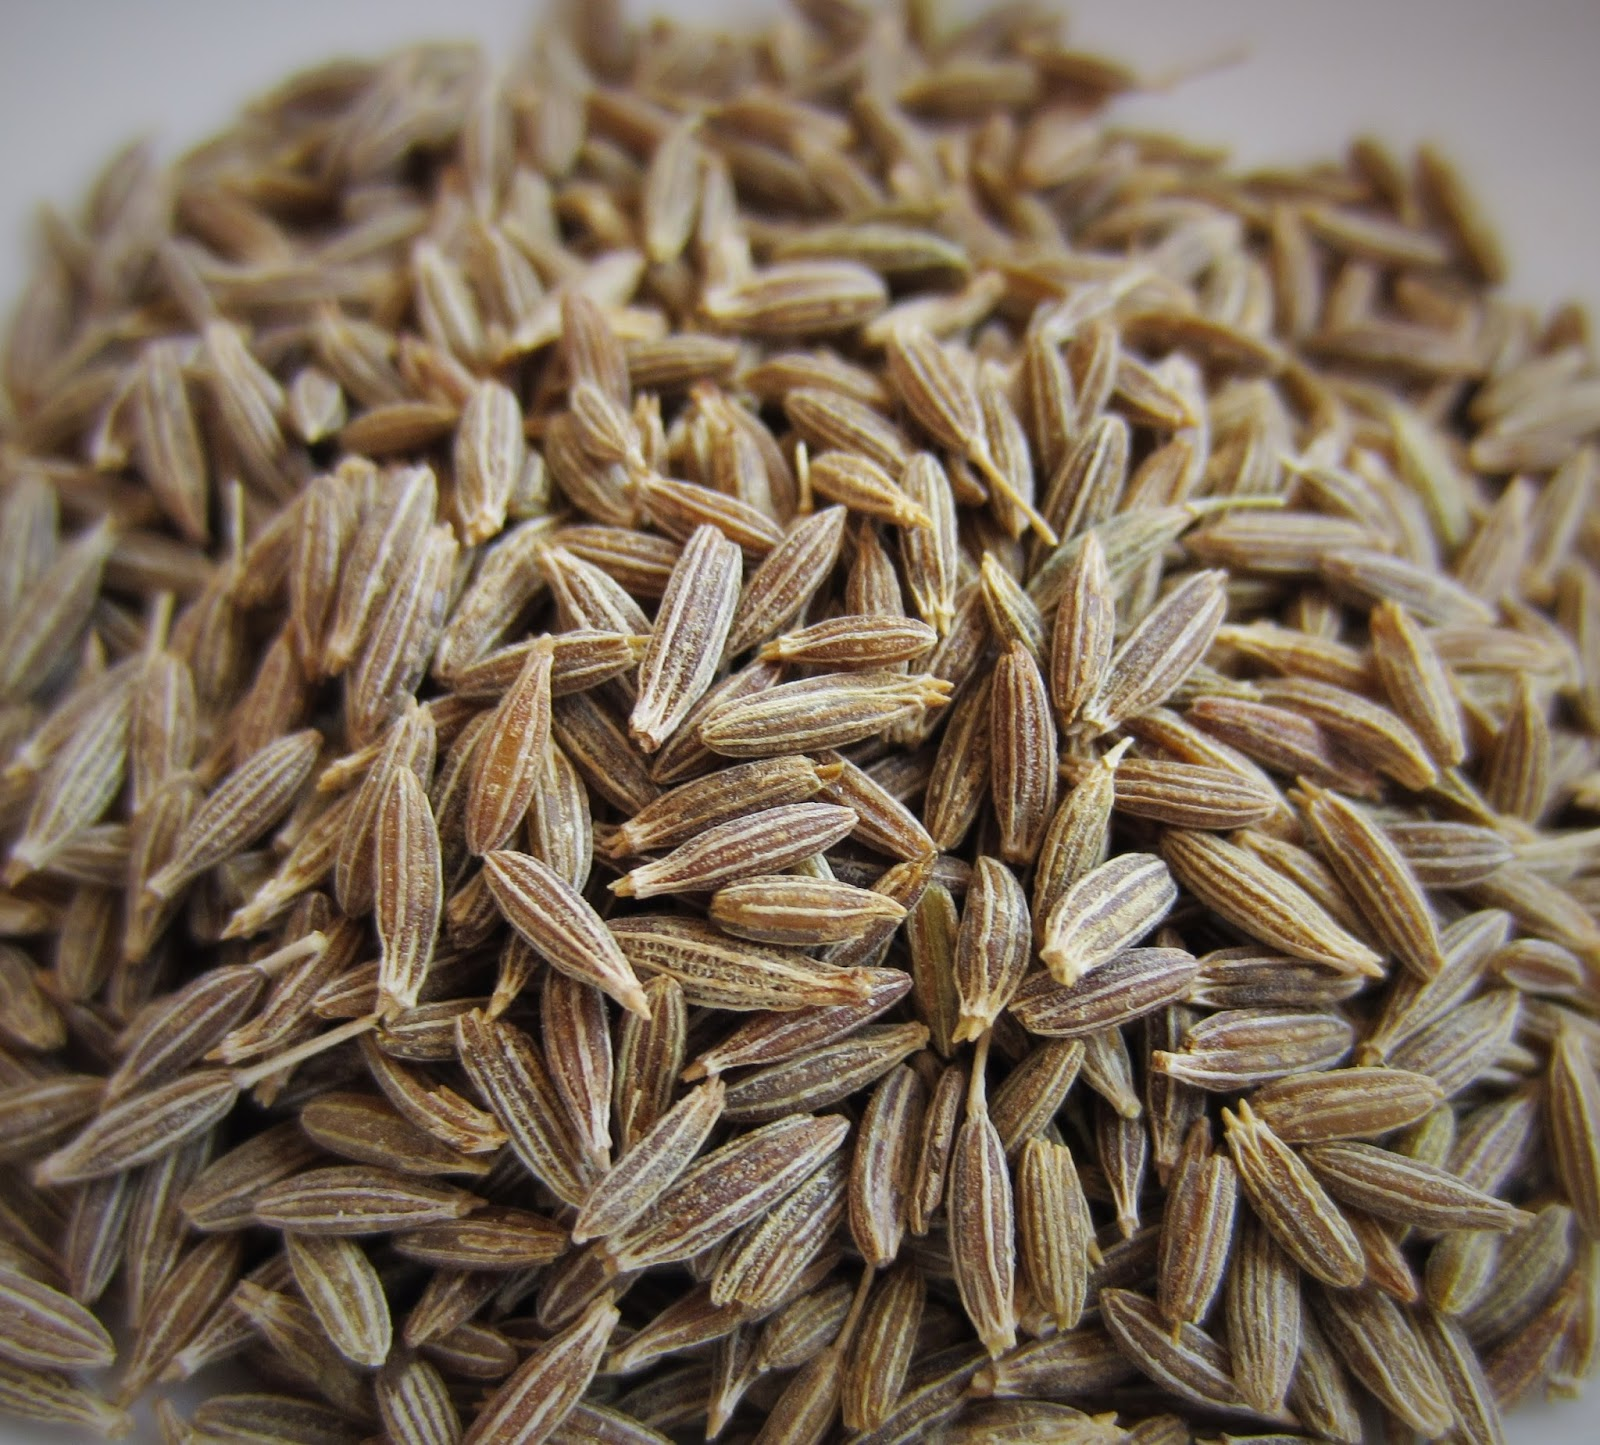 FOOD HISTORY: Cumin in ancient times